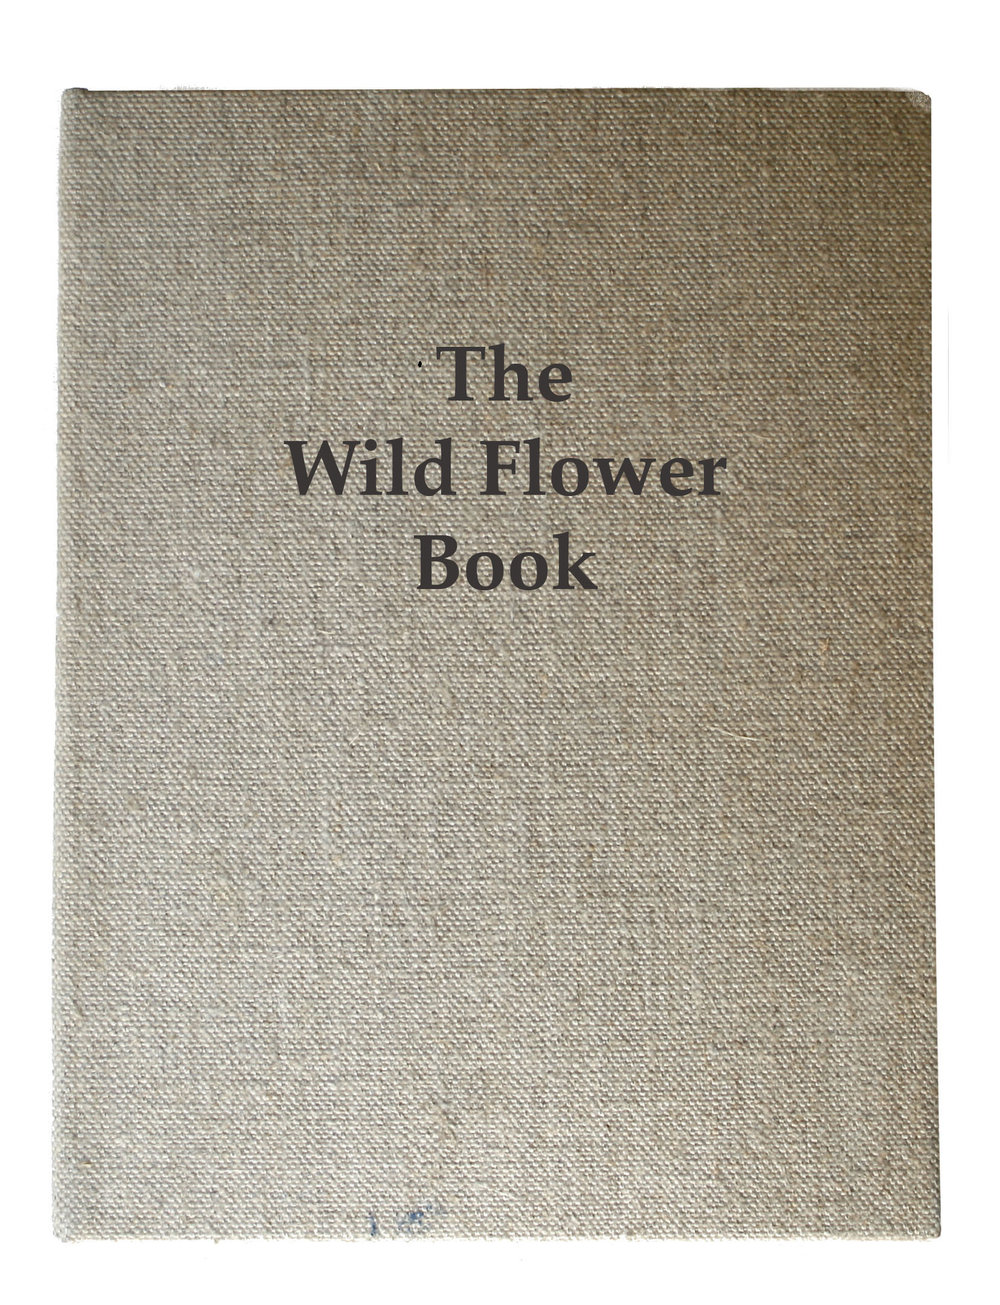 Wild Flower Book by Stephen McClymont